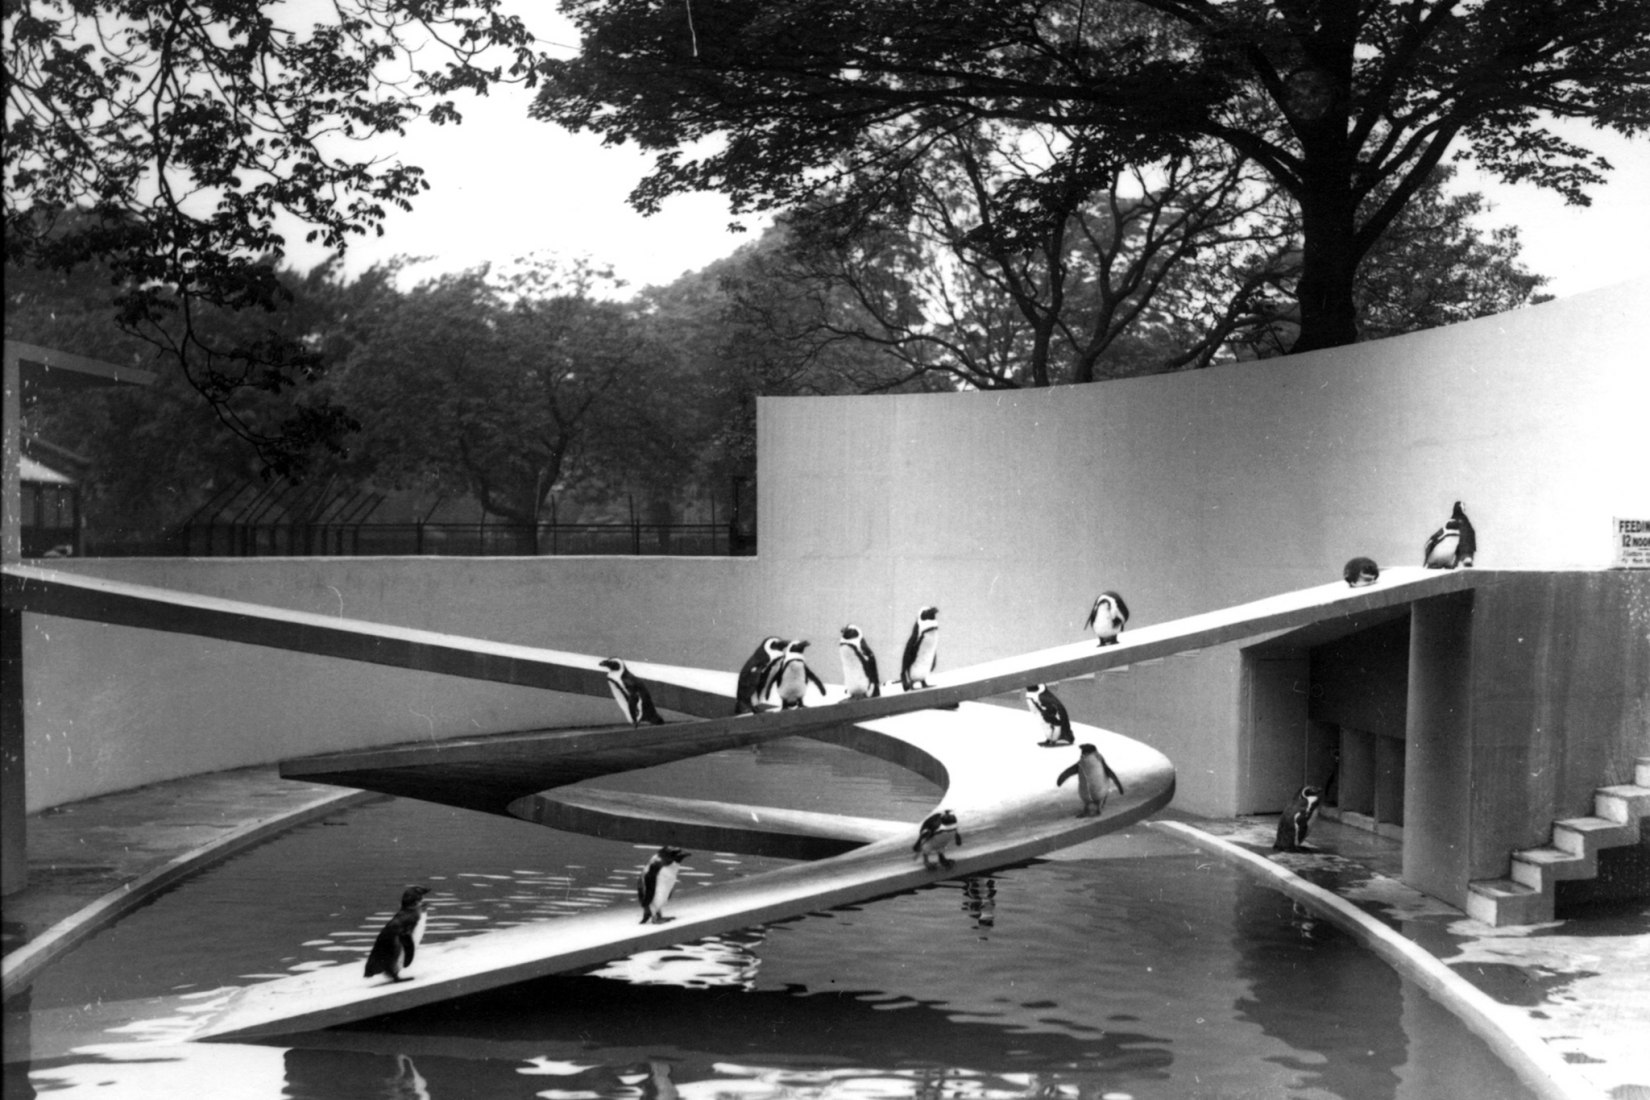 The London Zoo is not only the world's oldest zoo but it also features a unique collections of buildings that represent nearly two centuries of architectural history. A clear example is the Penguin Pool designed in 1934 by Berthold Lubetkin. The Penguin Pool at London Zoo. Photograph by Frederick William Bond, 1934.